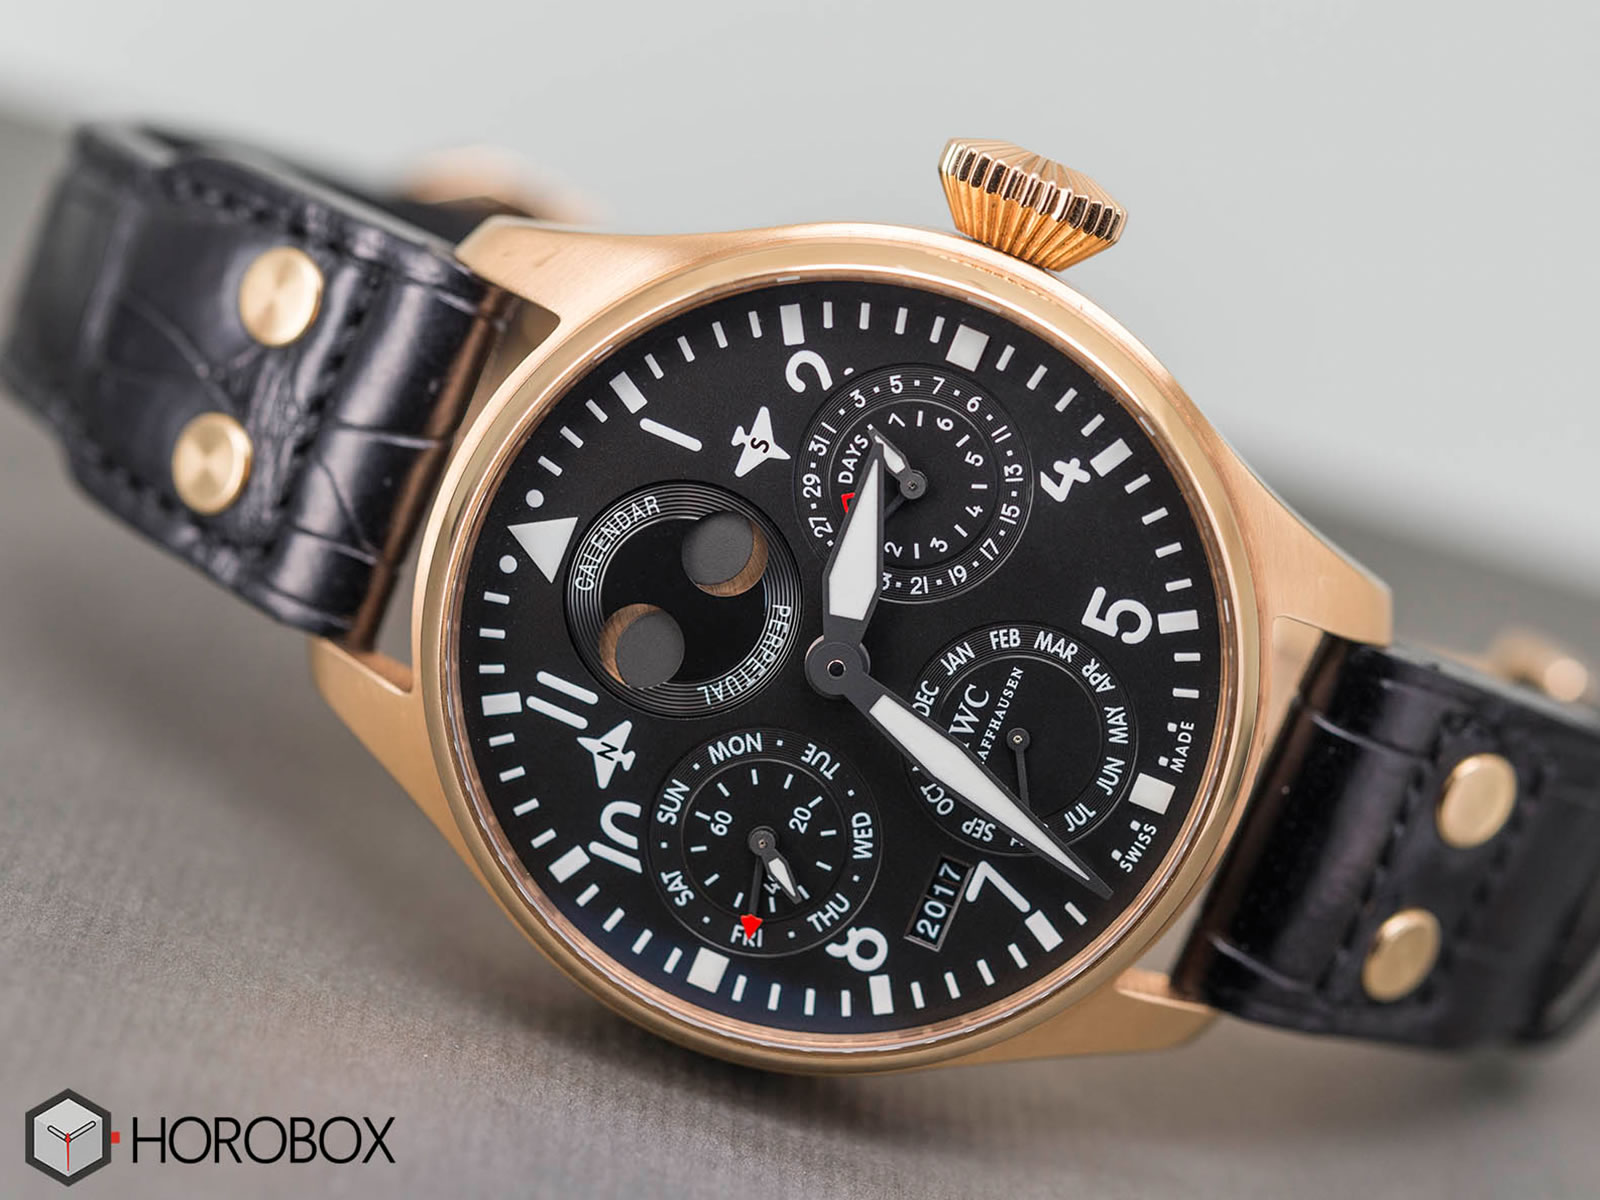 iw502628-iwc-big-pilot-perpetual-calendar-18k-red-gold-limited-edition-.jpg